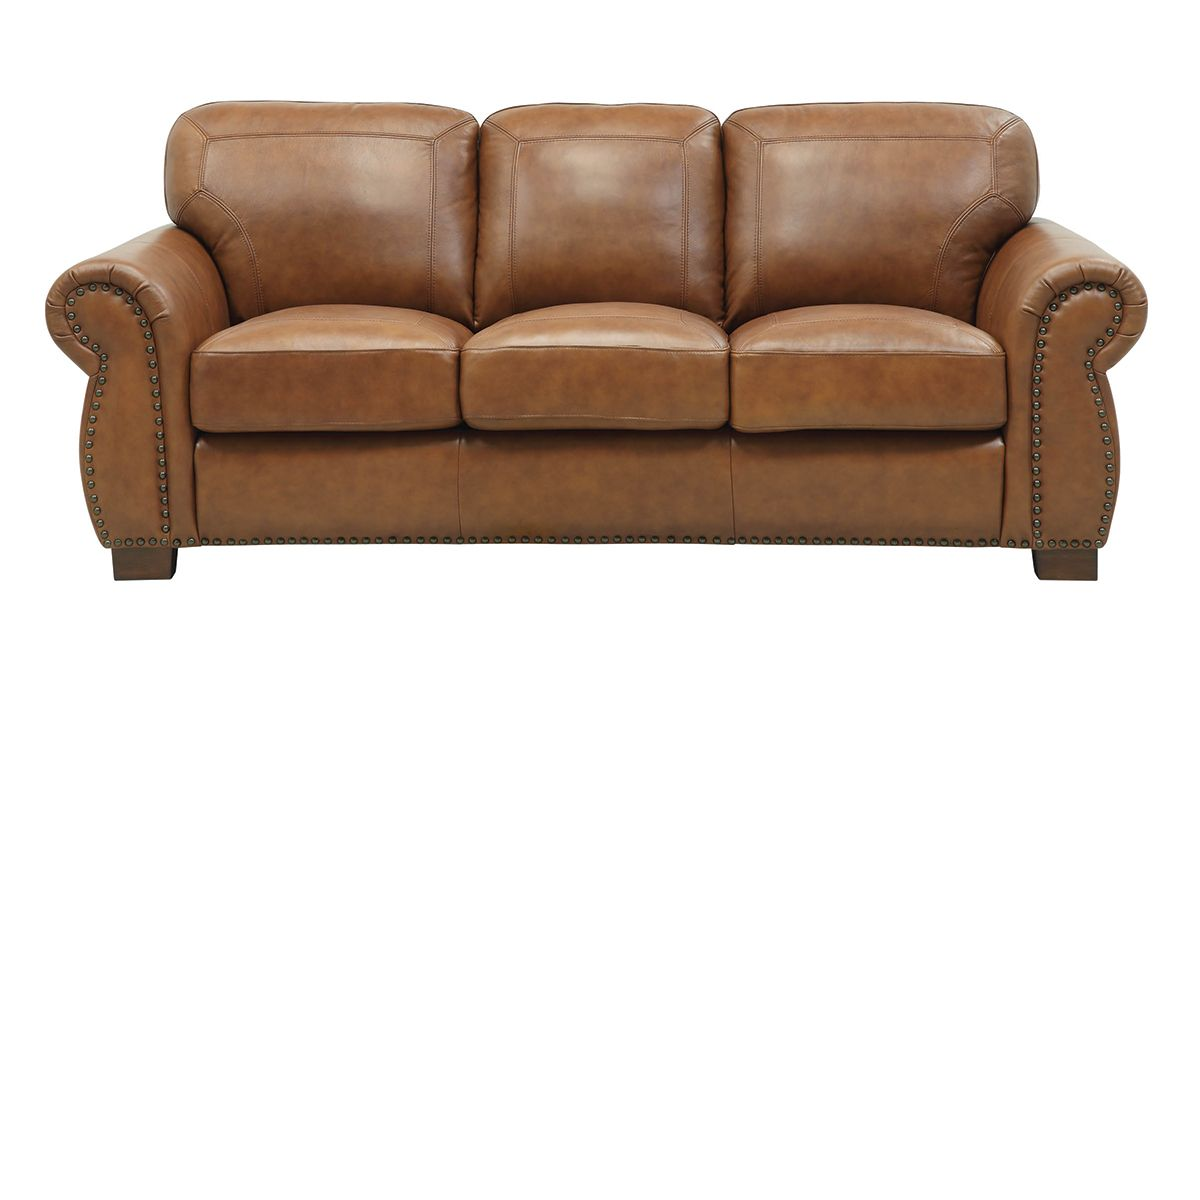 Room Store Chandler: The Dump Furniture - CHANDLER SOFA